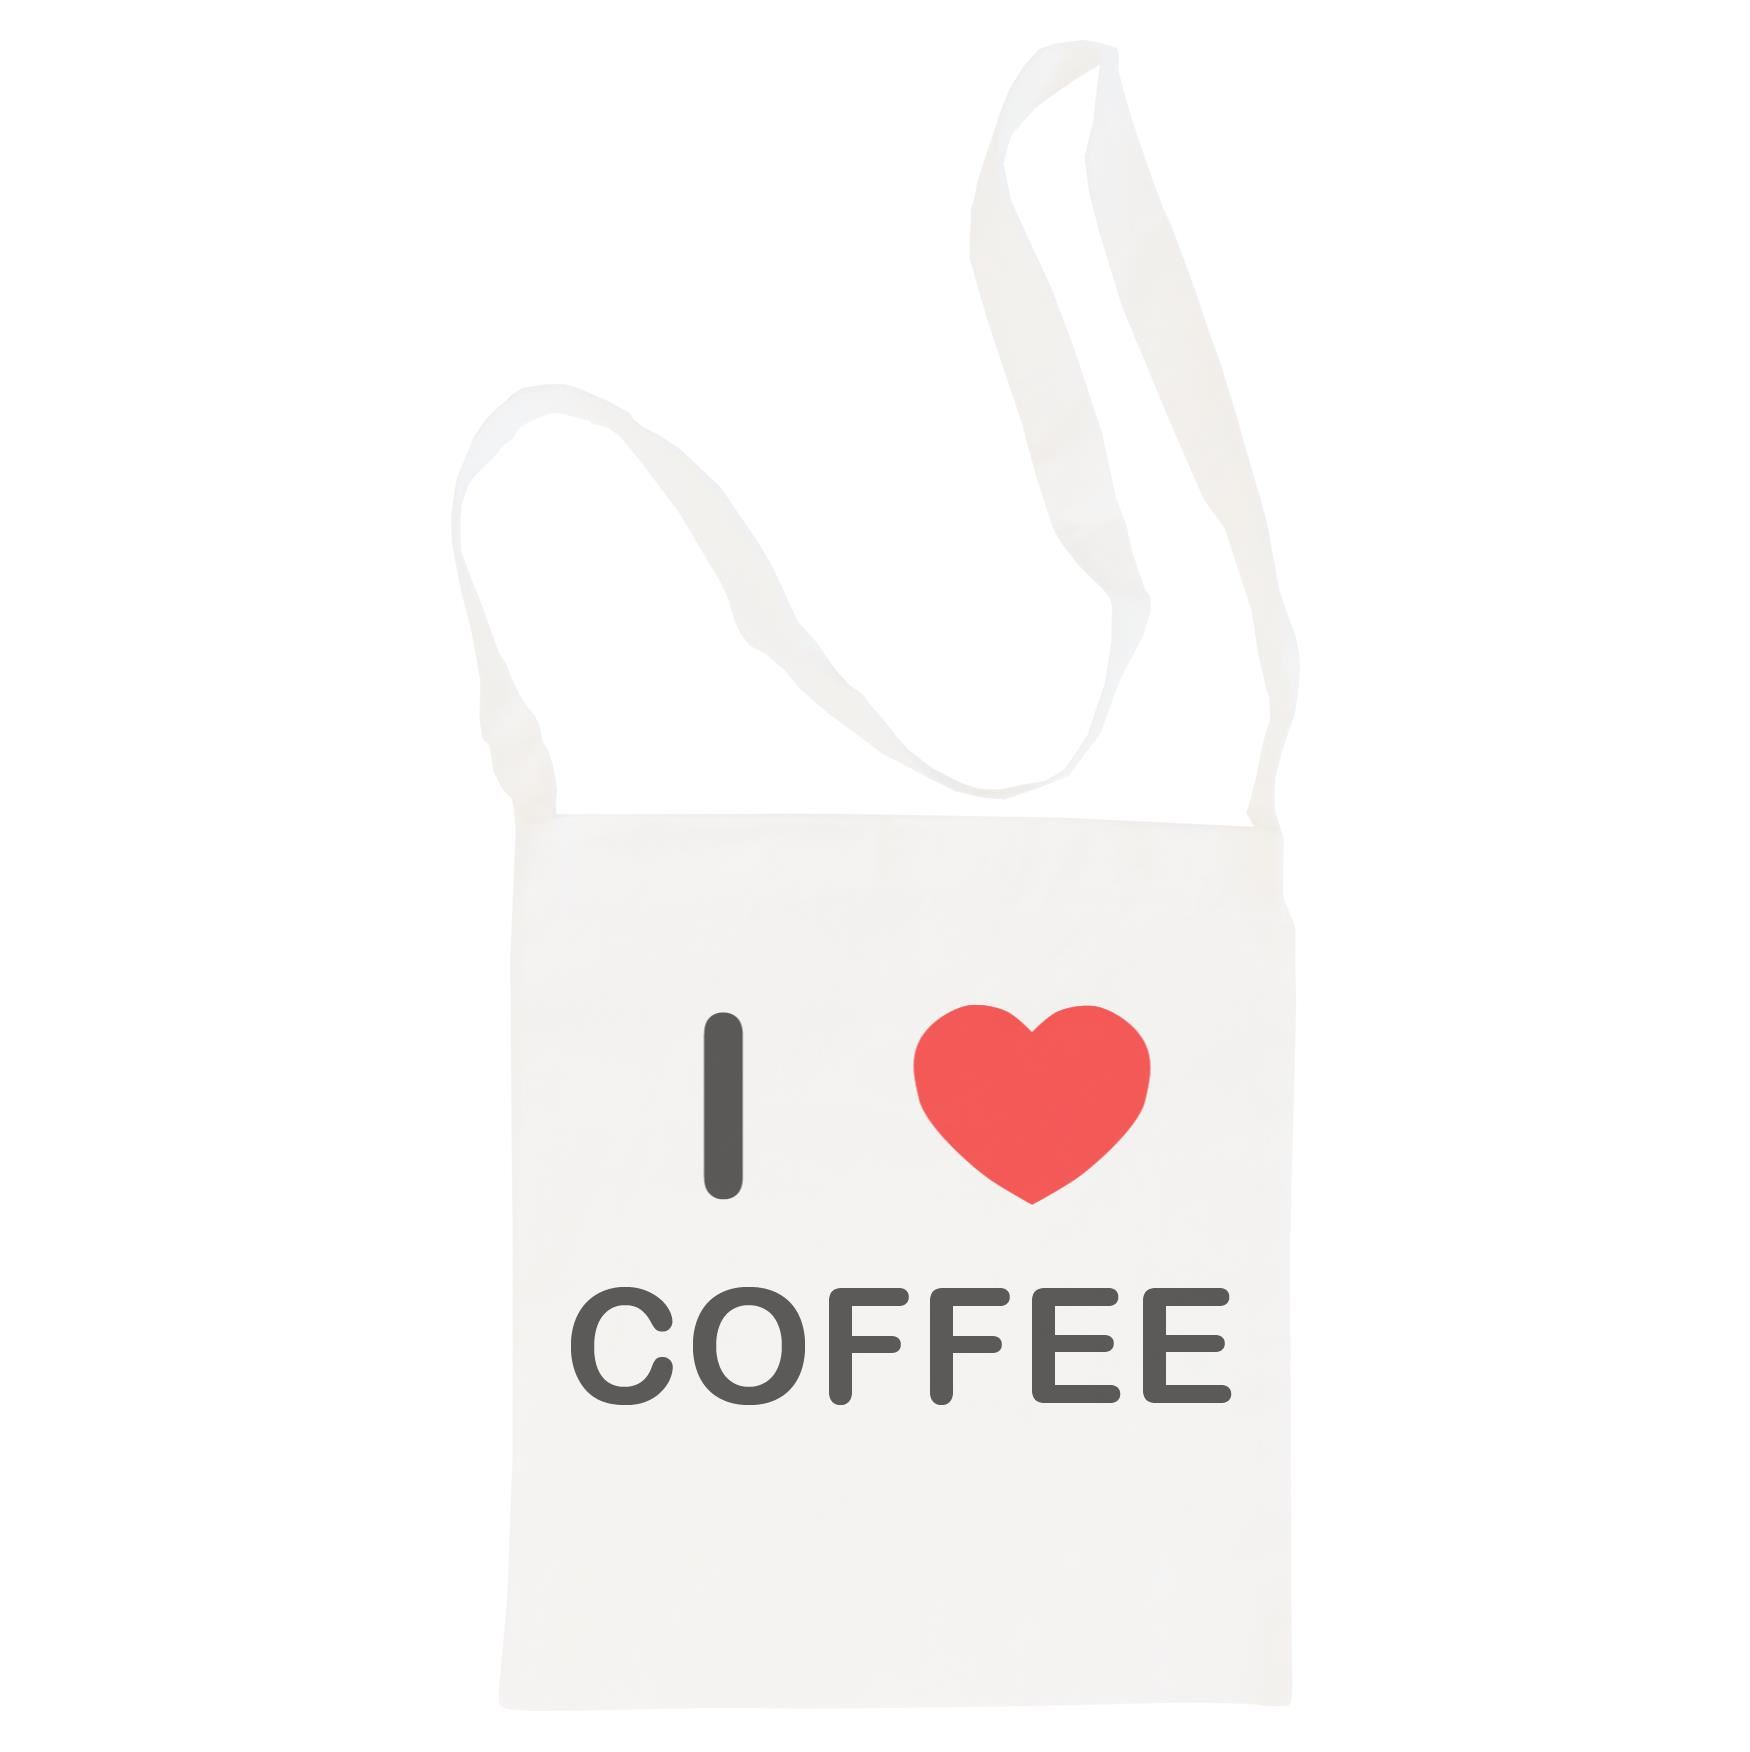 I Love Coffee - Cotton Bag | Size choice Tote, Shopper or Sling